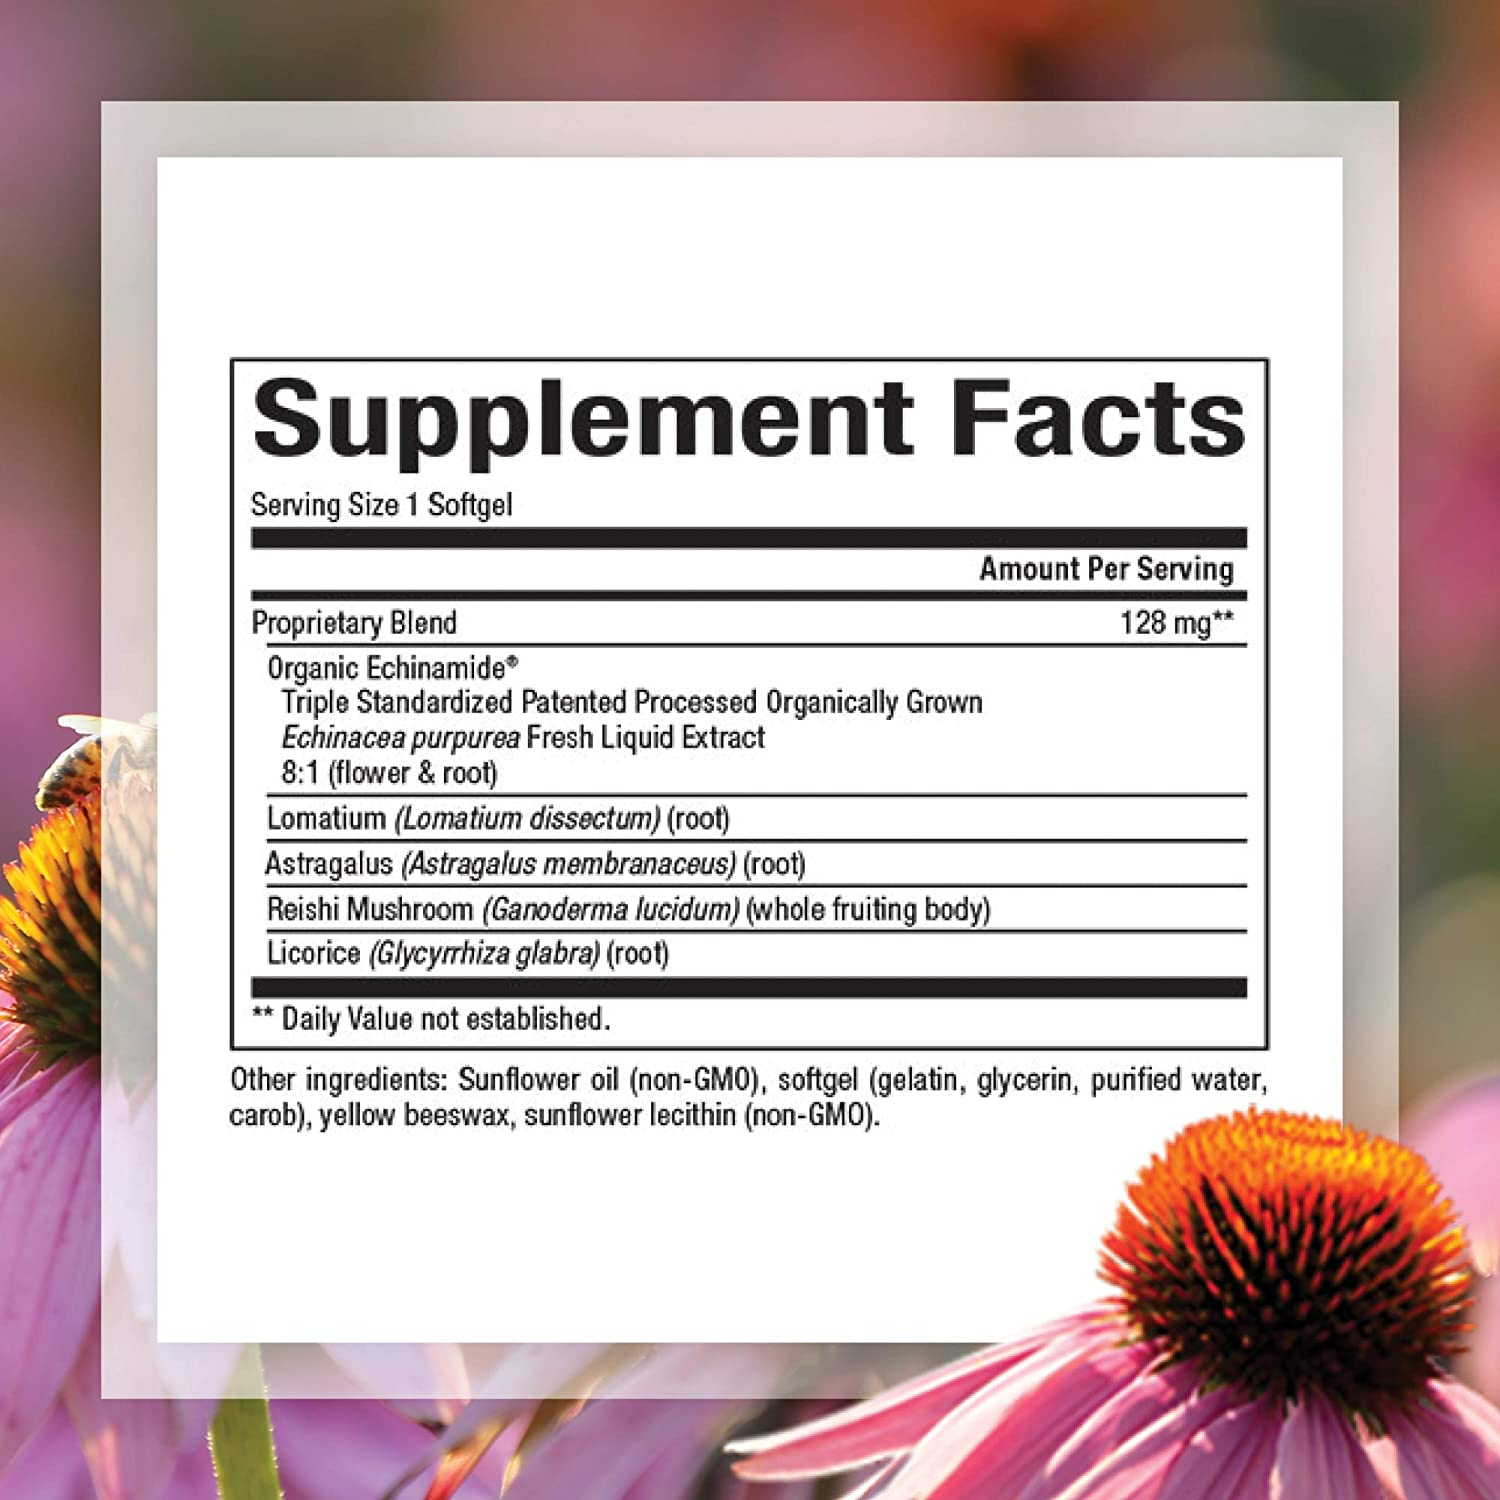 Natural Factors, Anti-V Formula, Echinacea Supplement for Immune and Wellness Support, Organic, Non-GMO, 60 softgels (60 Servings)